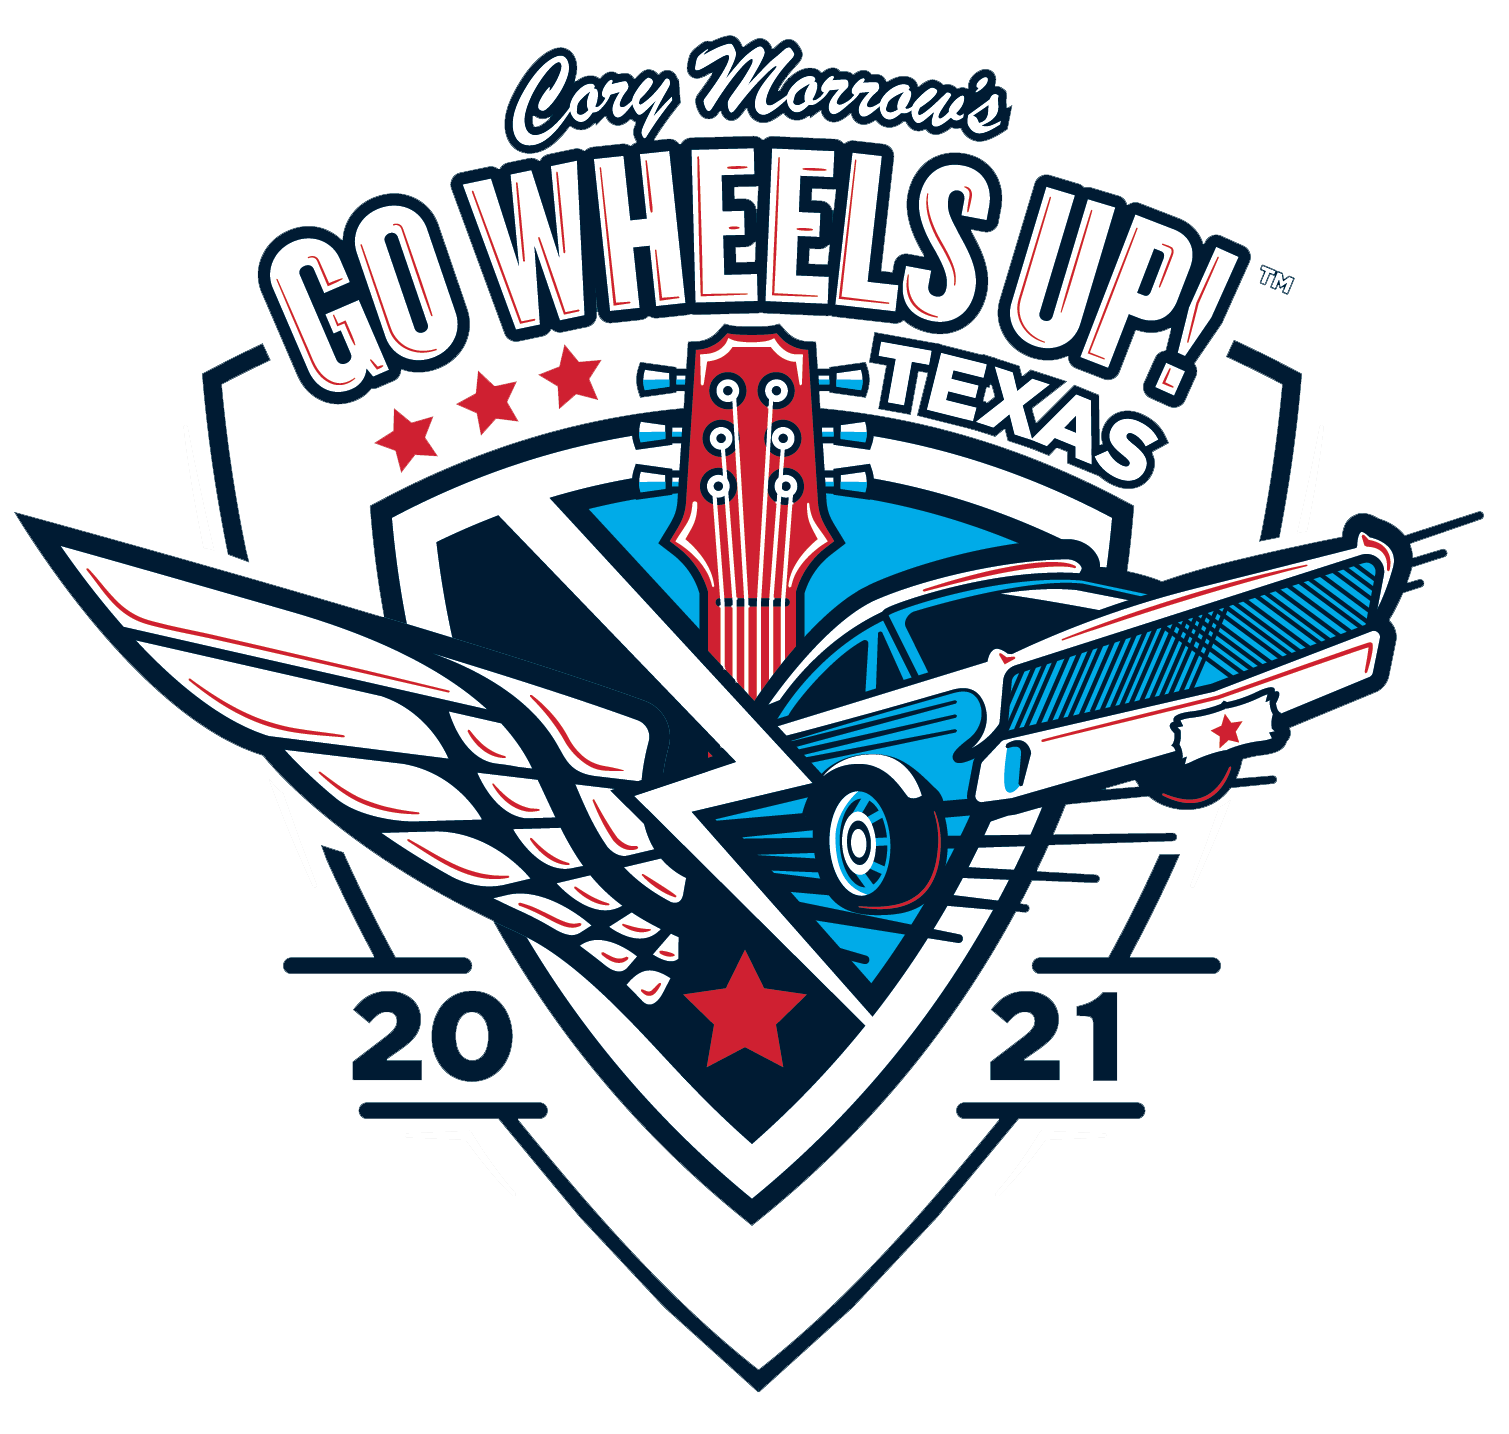 Cory Morrow's Go Wheels Up! 2020 Texas featuring the AOPA Fly-In